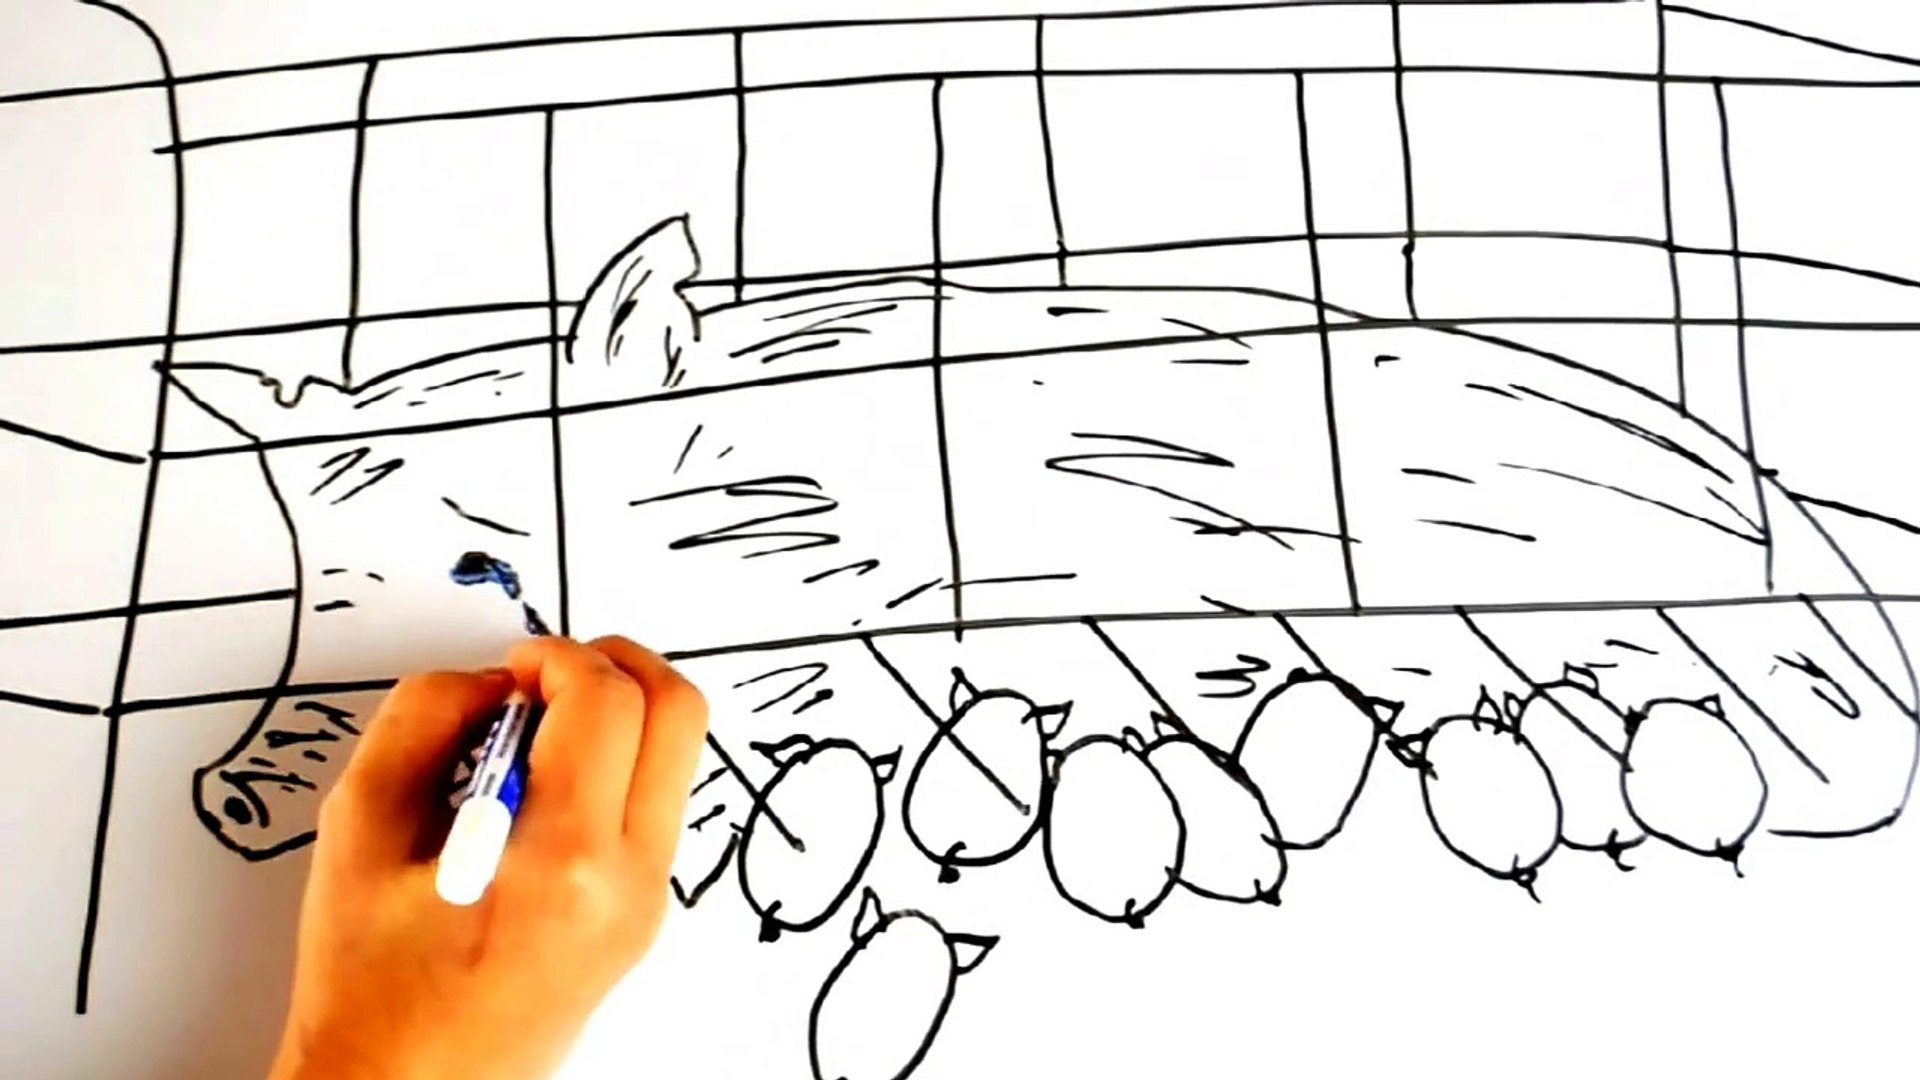 [Tuttorial Draw]How to draw a litte pig?